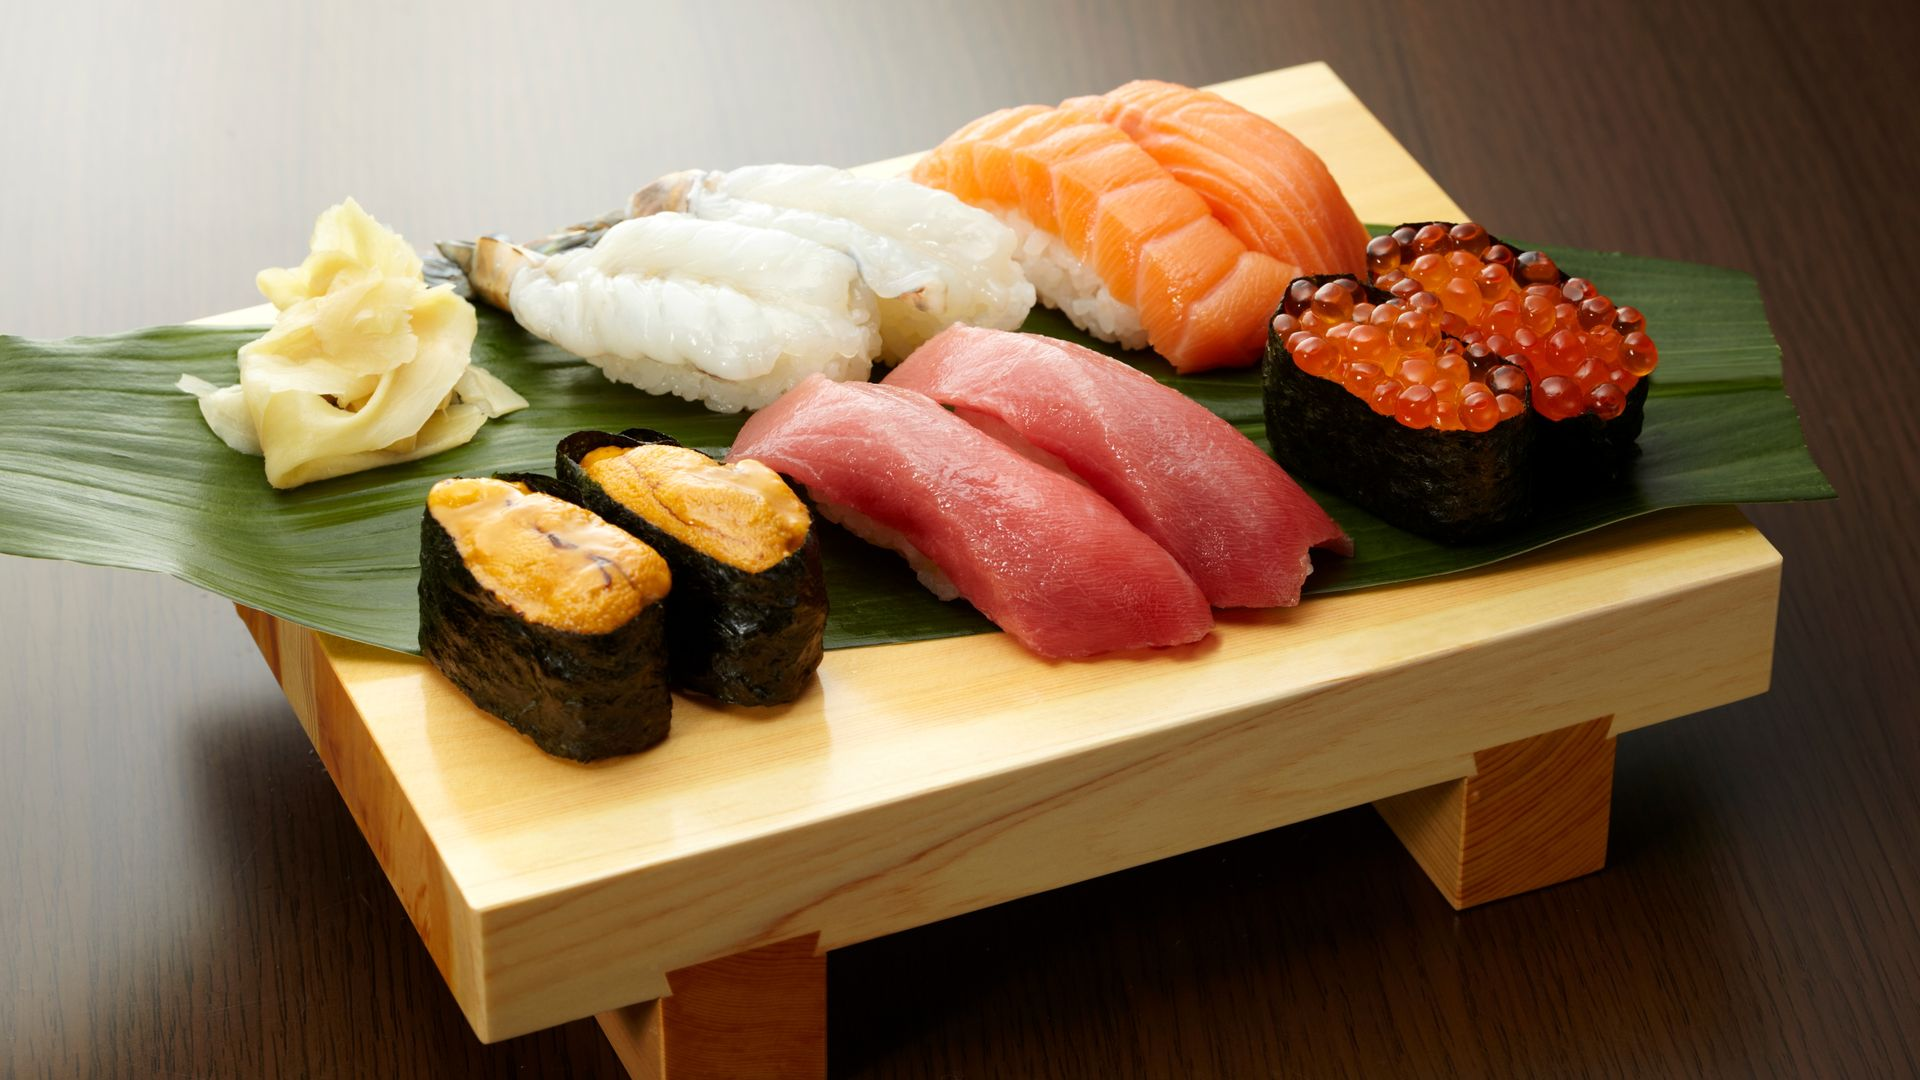 Zoo: Can You Pass This Japanese Food Test?